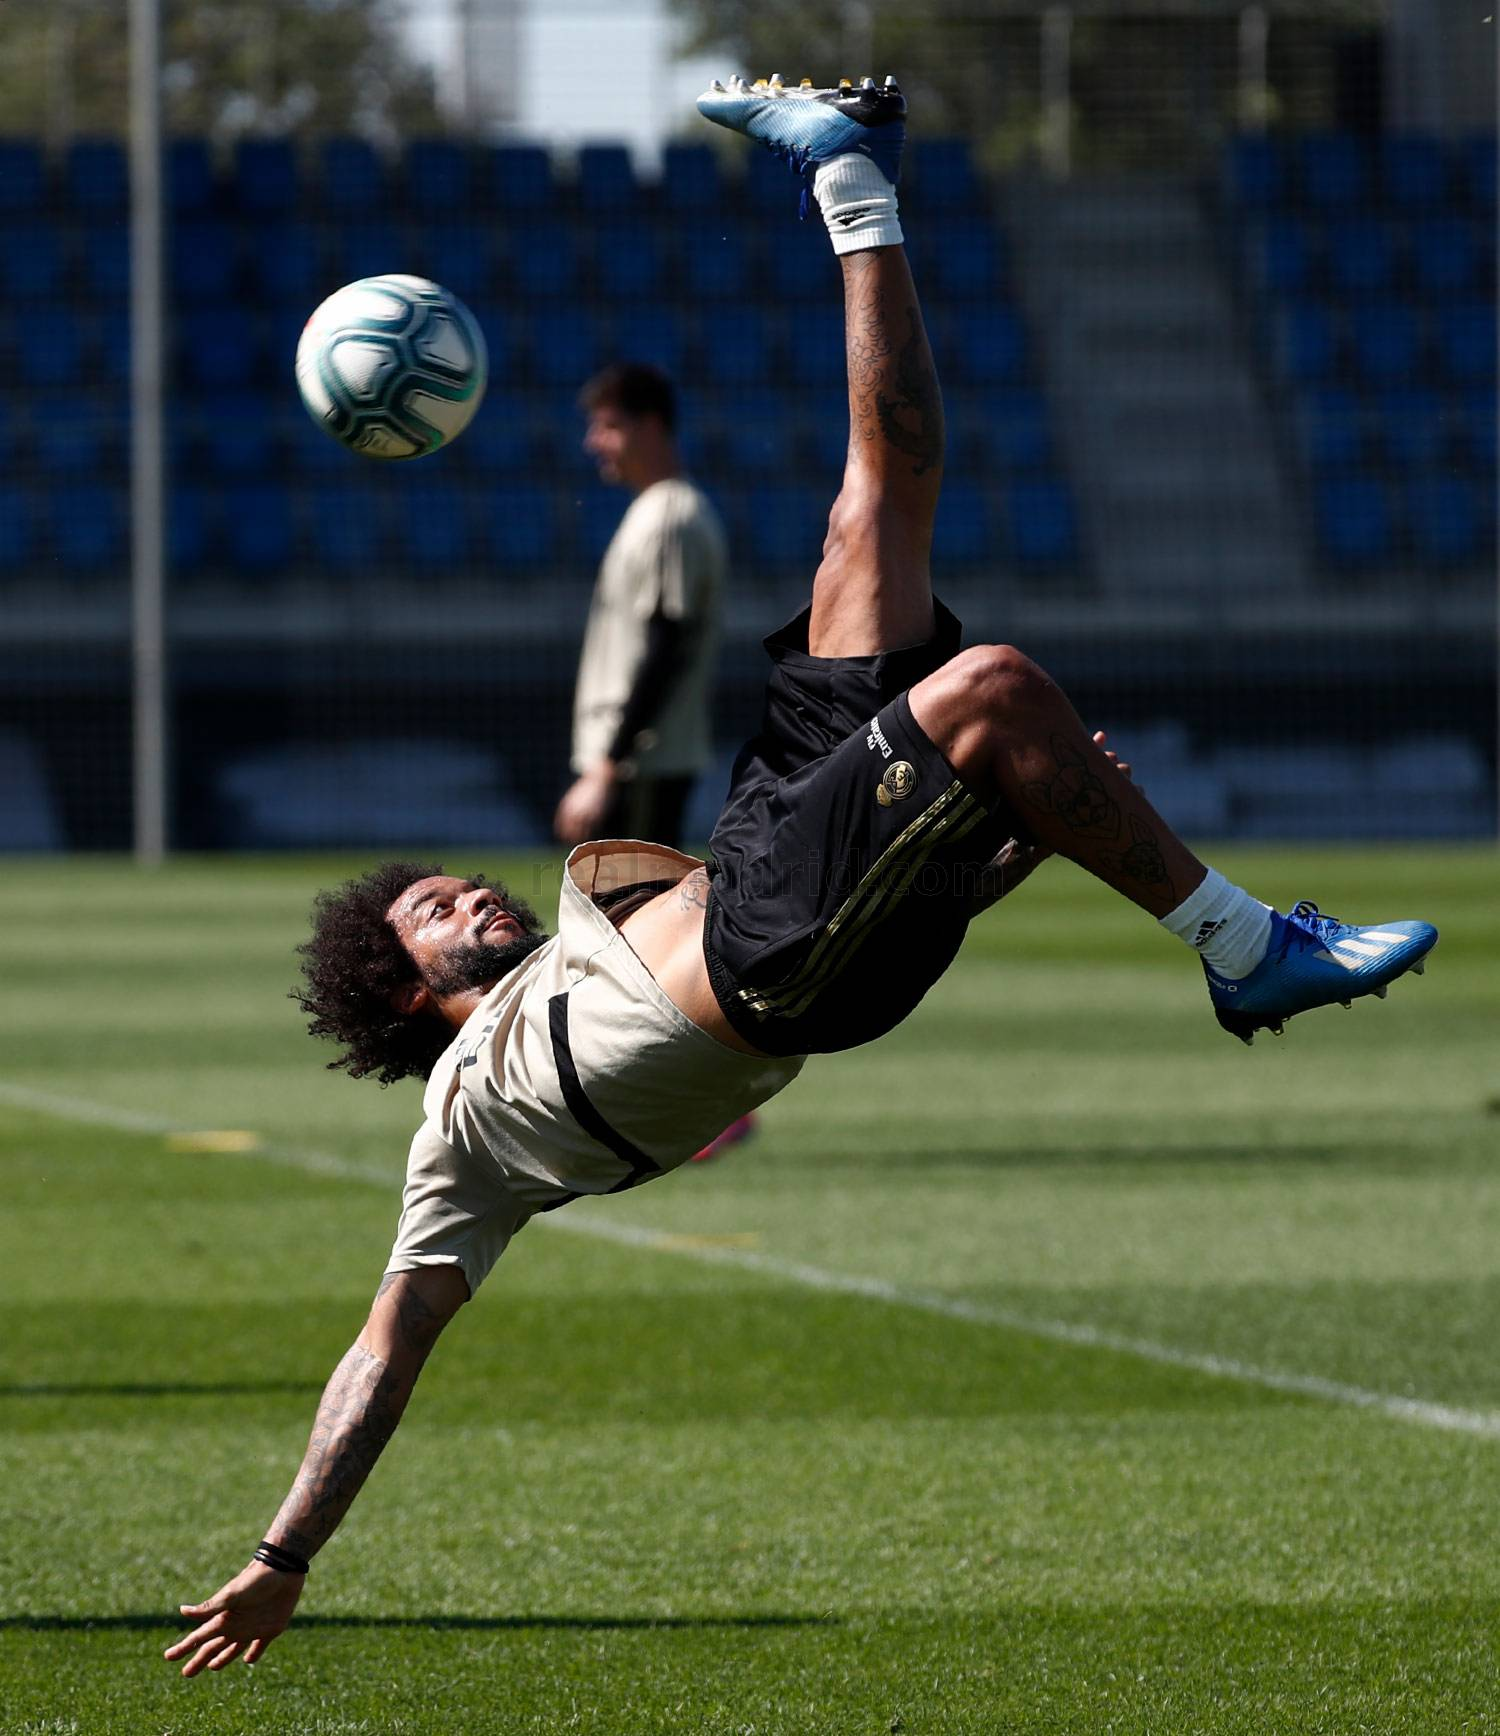 Real Madrid - Entrenamiento del Real Madrid  - 21-05-2020